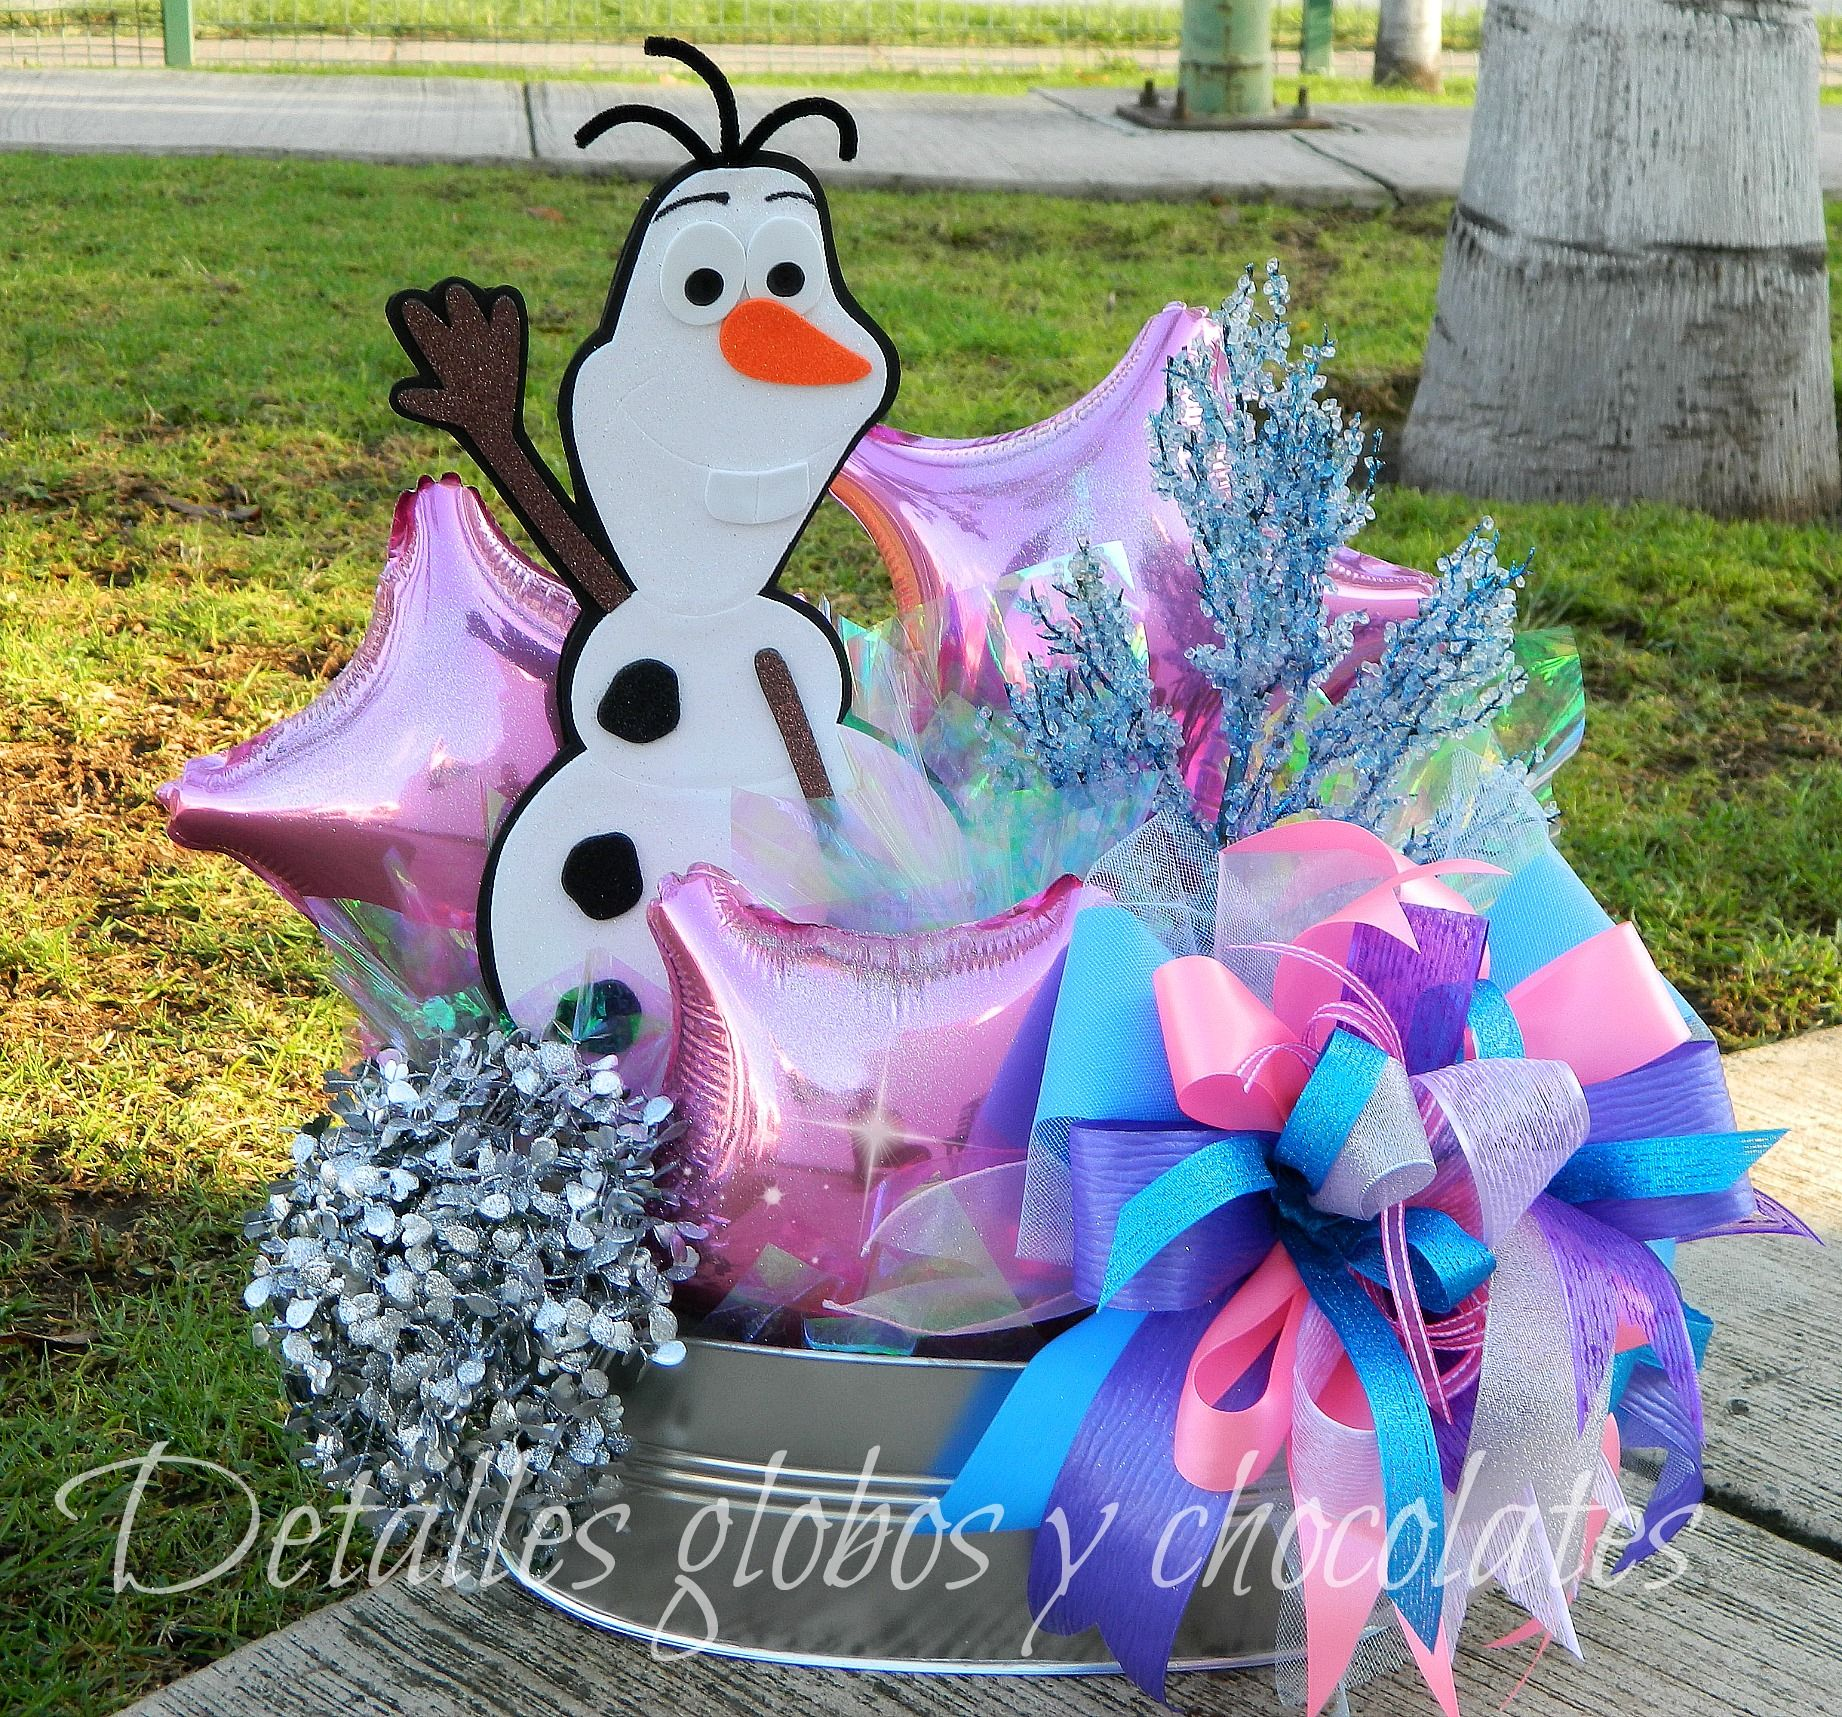 Centro de mesa de frozen party pinterest frozen party fiesta frozen and fiestas - Centros de mesa de frozen ...